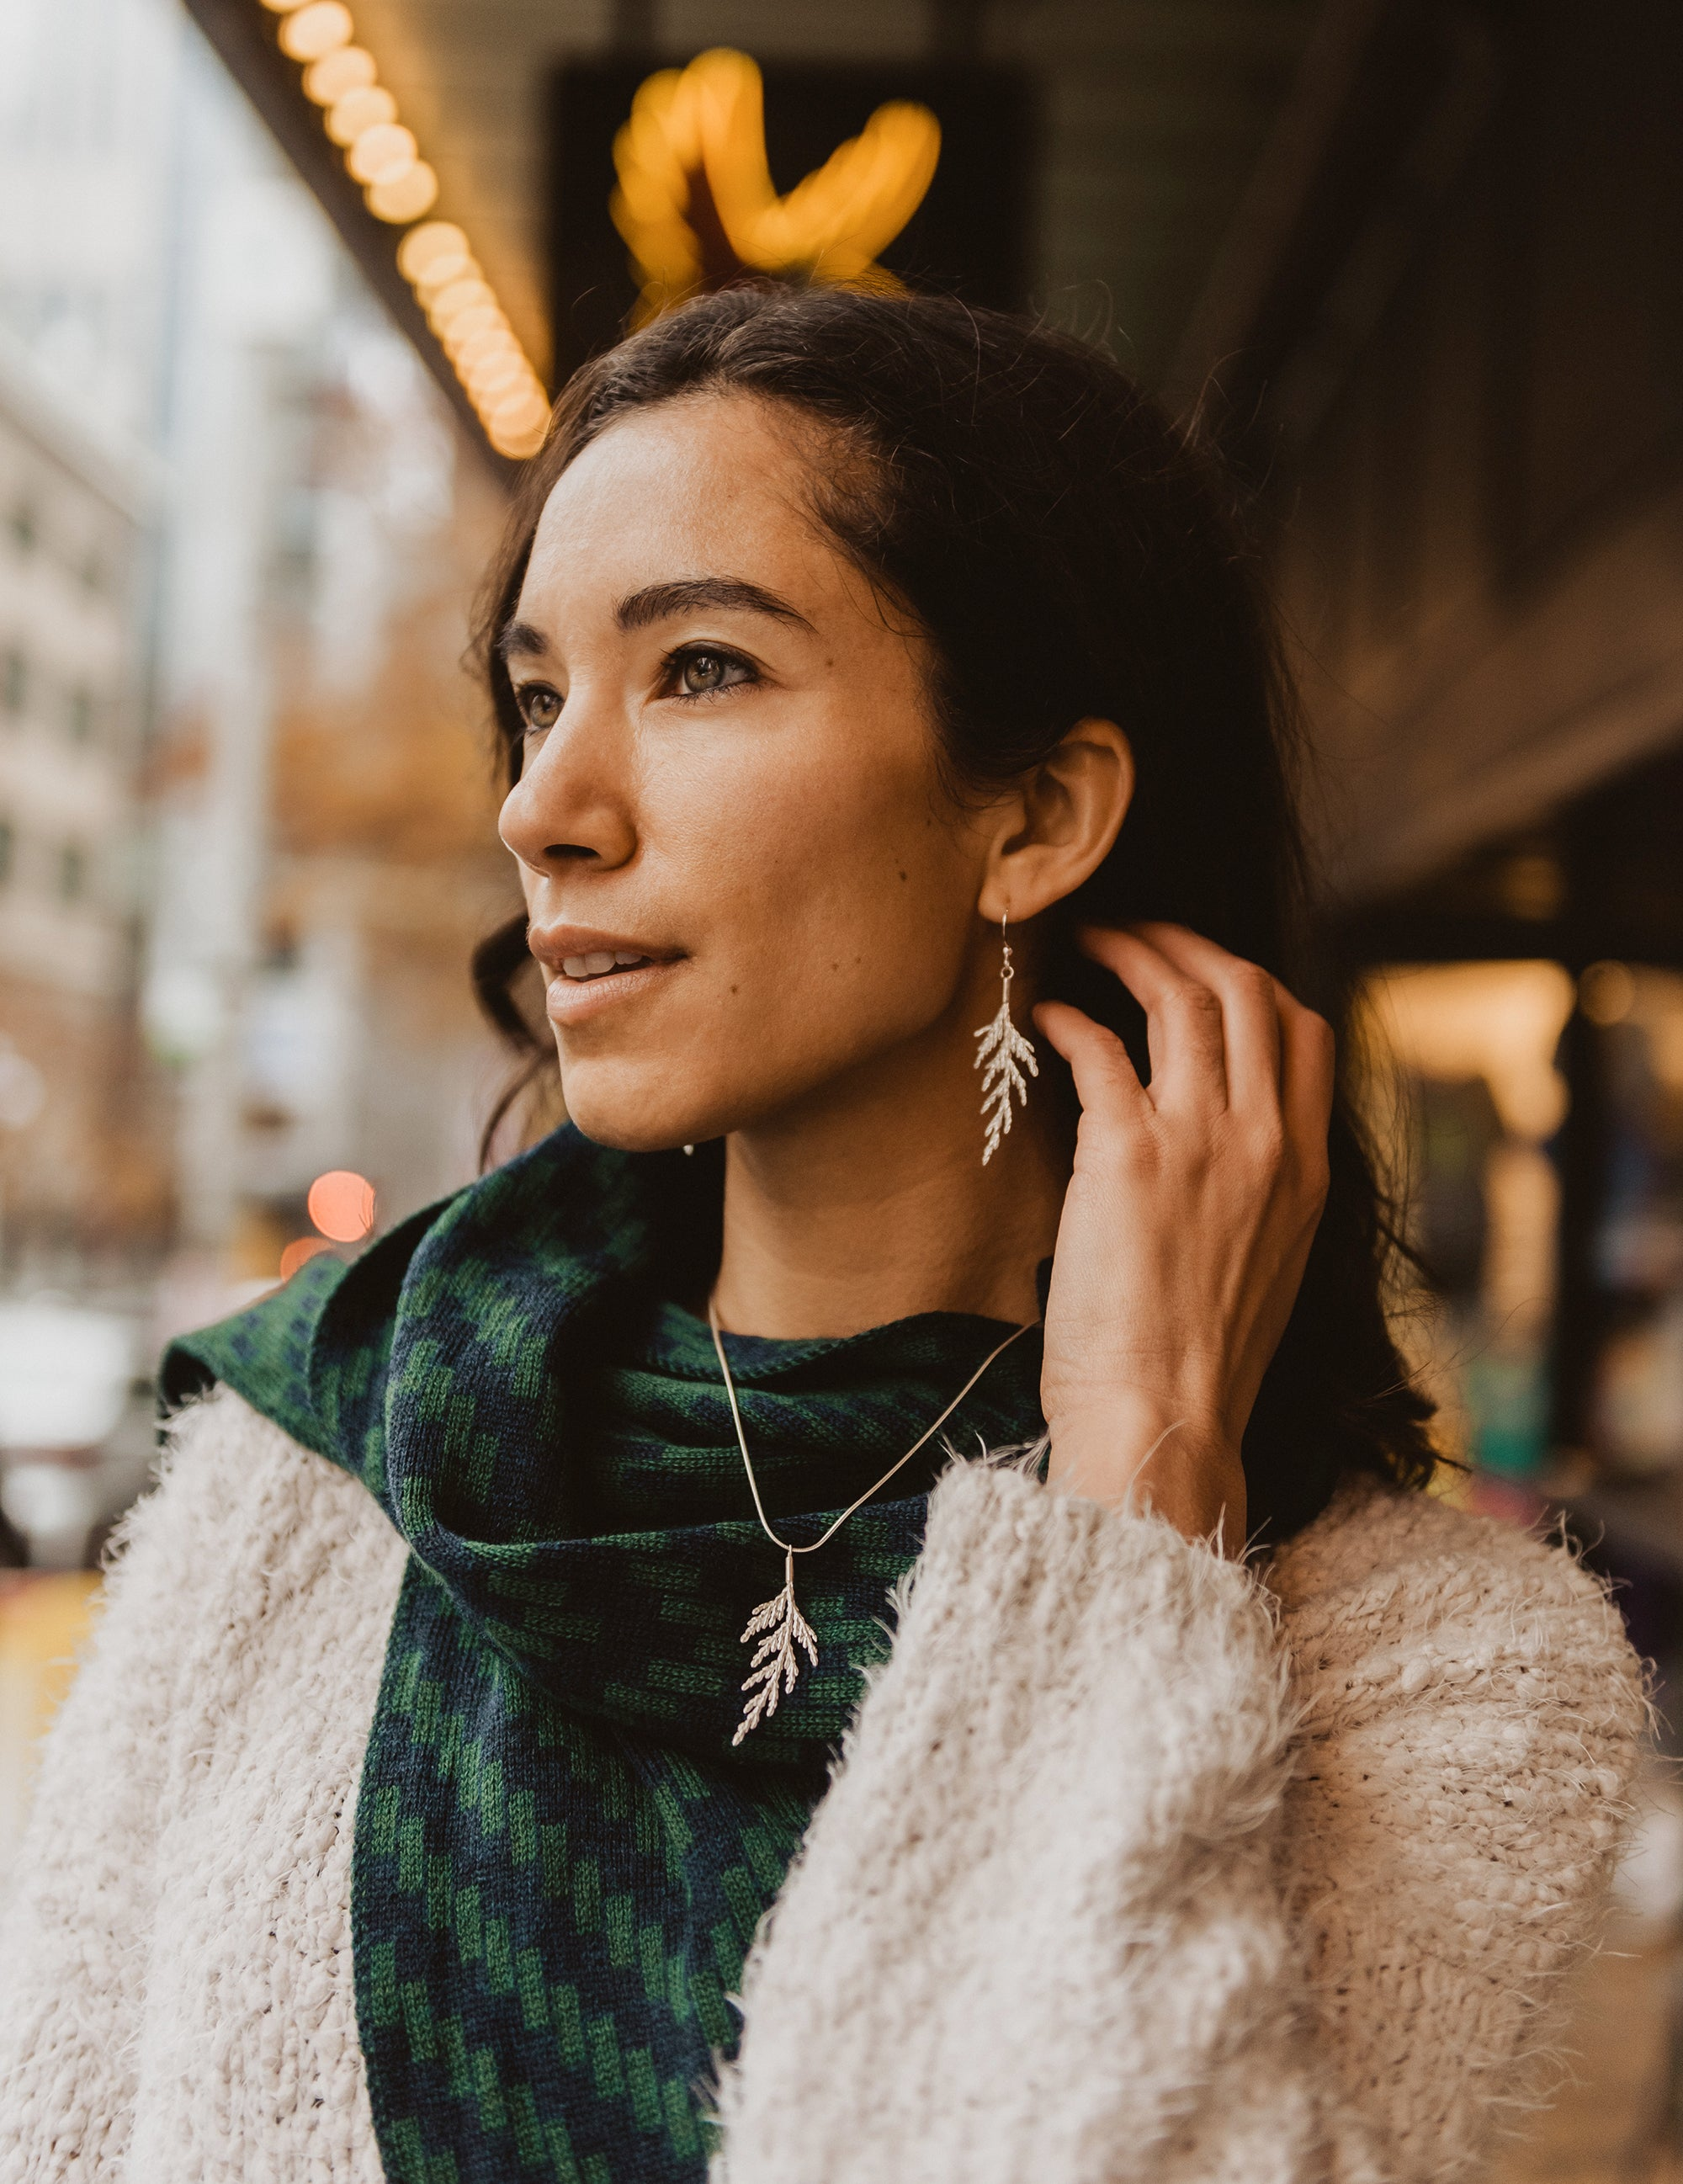 Woman-models-forest-green-and-navy-blue-knit-scarf-and-silver-necklace-and-earrings-featuring-cedar-bough